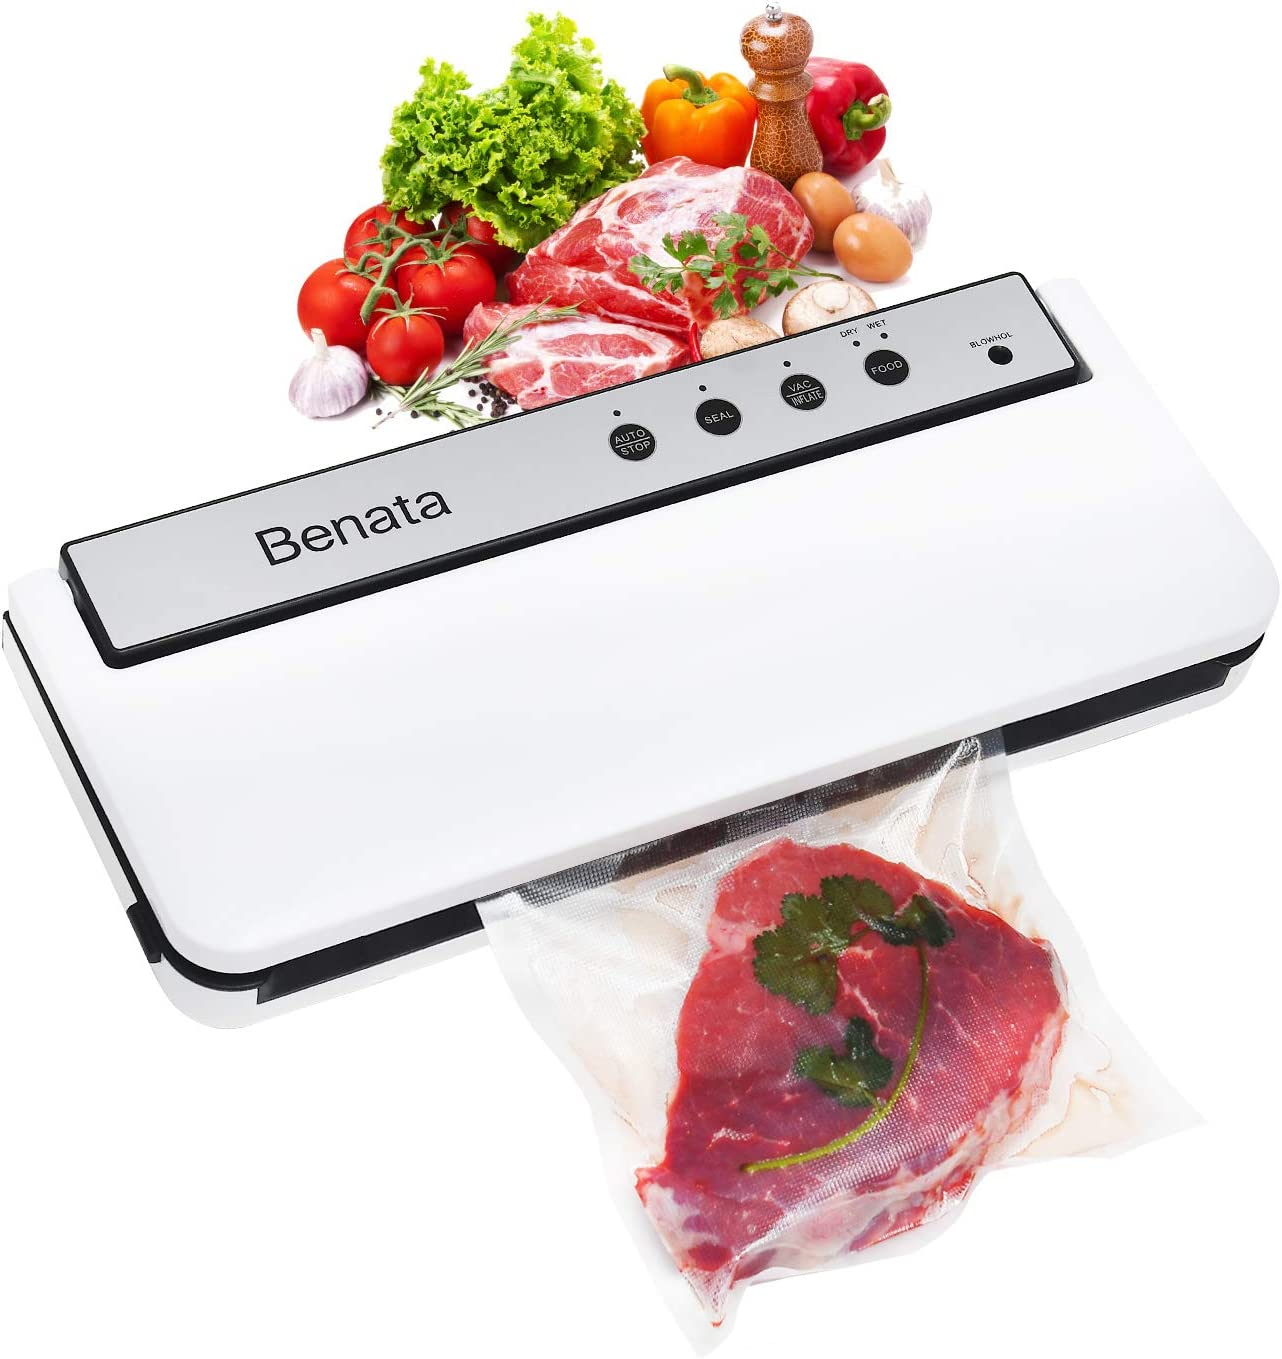 BENATA Vacuum Sealer Machine, 60Kpa Automatic Food Sealer, Dry & Moist Modes, Food Saver Laminator, Bonus 10 x Sealing Bags & 1x Canning Vacuum Sealer pipe (Pearl White)